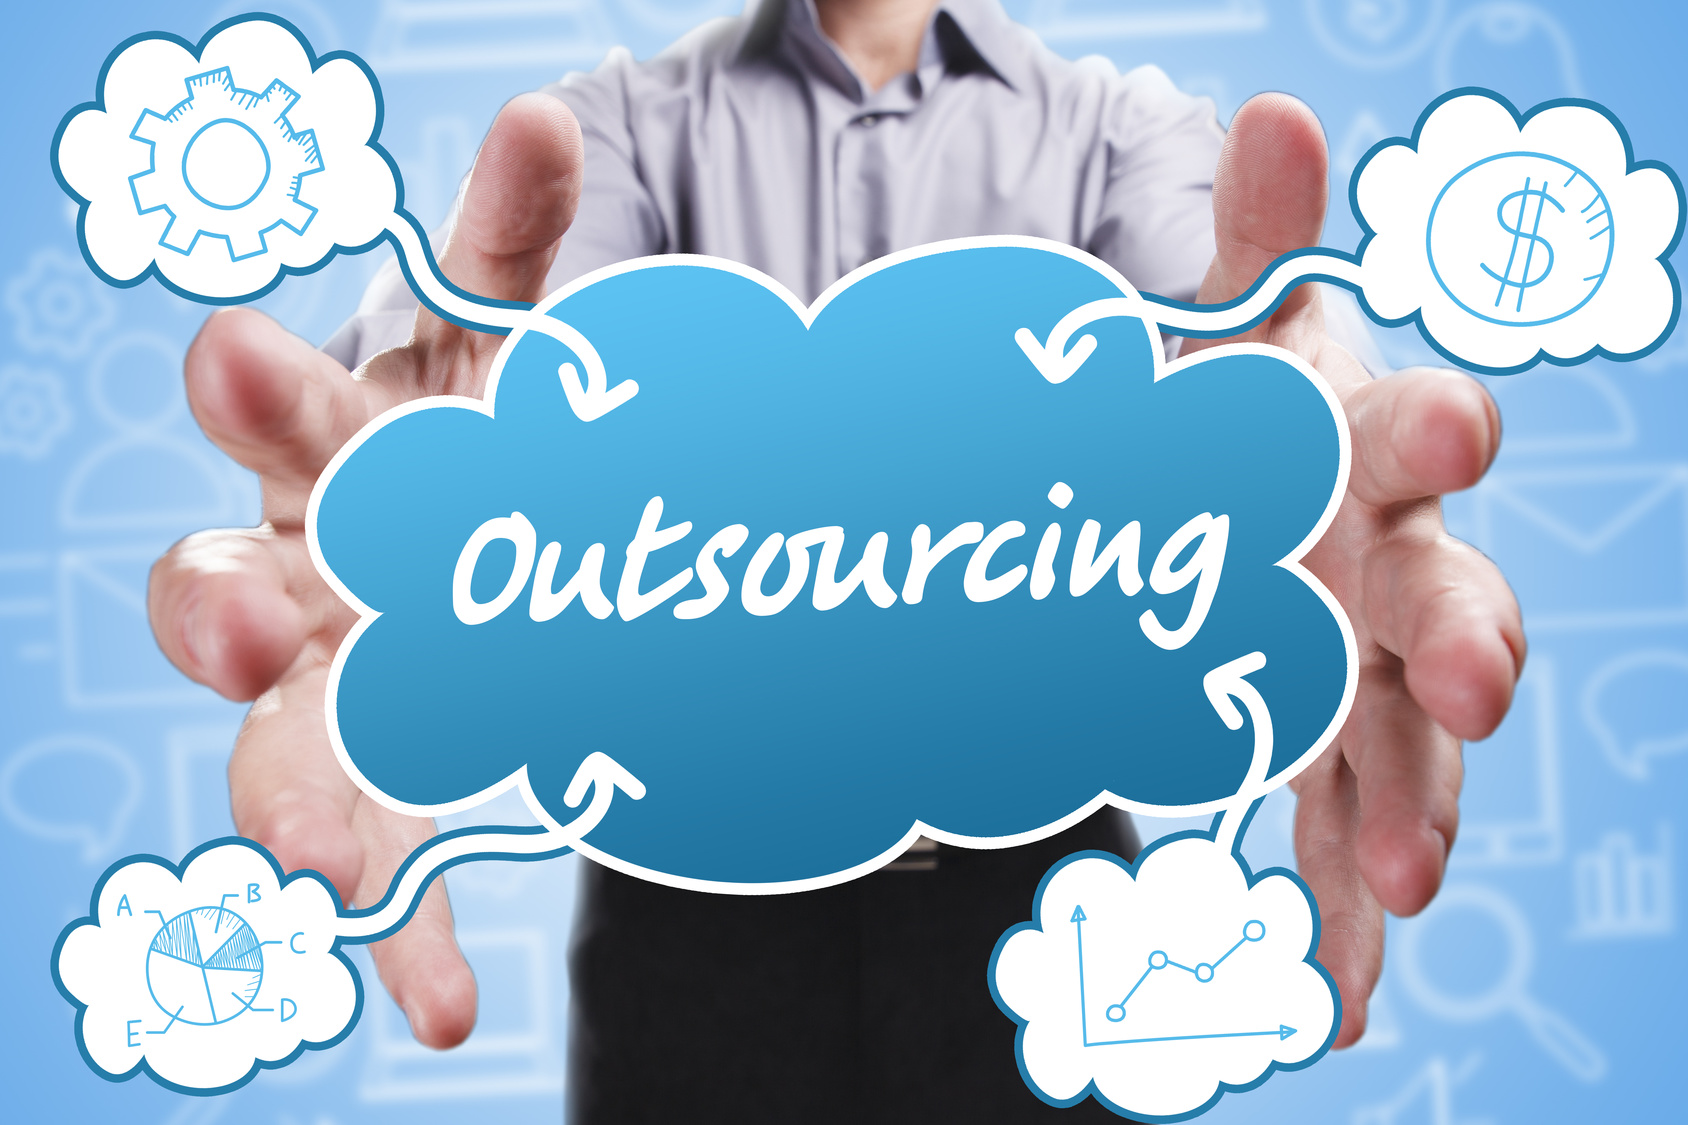 Outsourcing – A Resolution or a Downside?